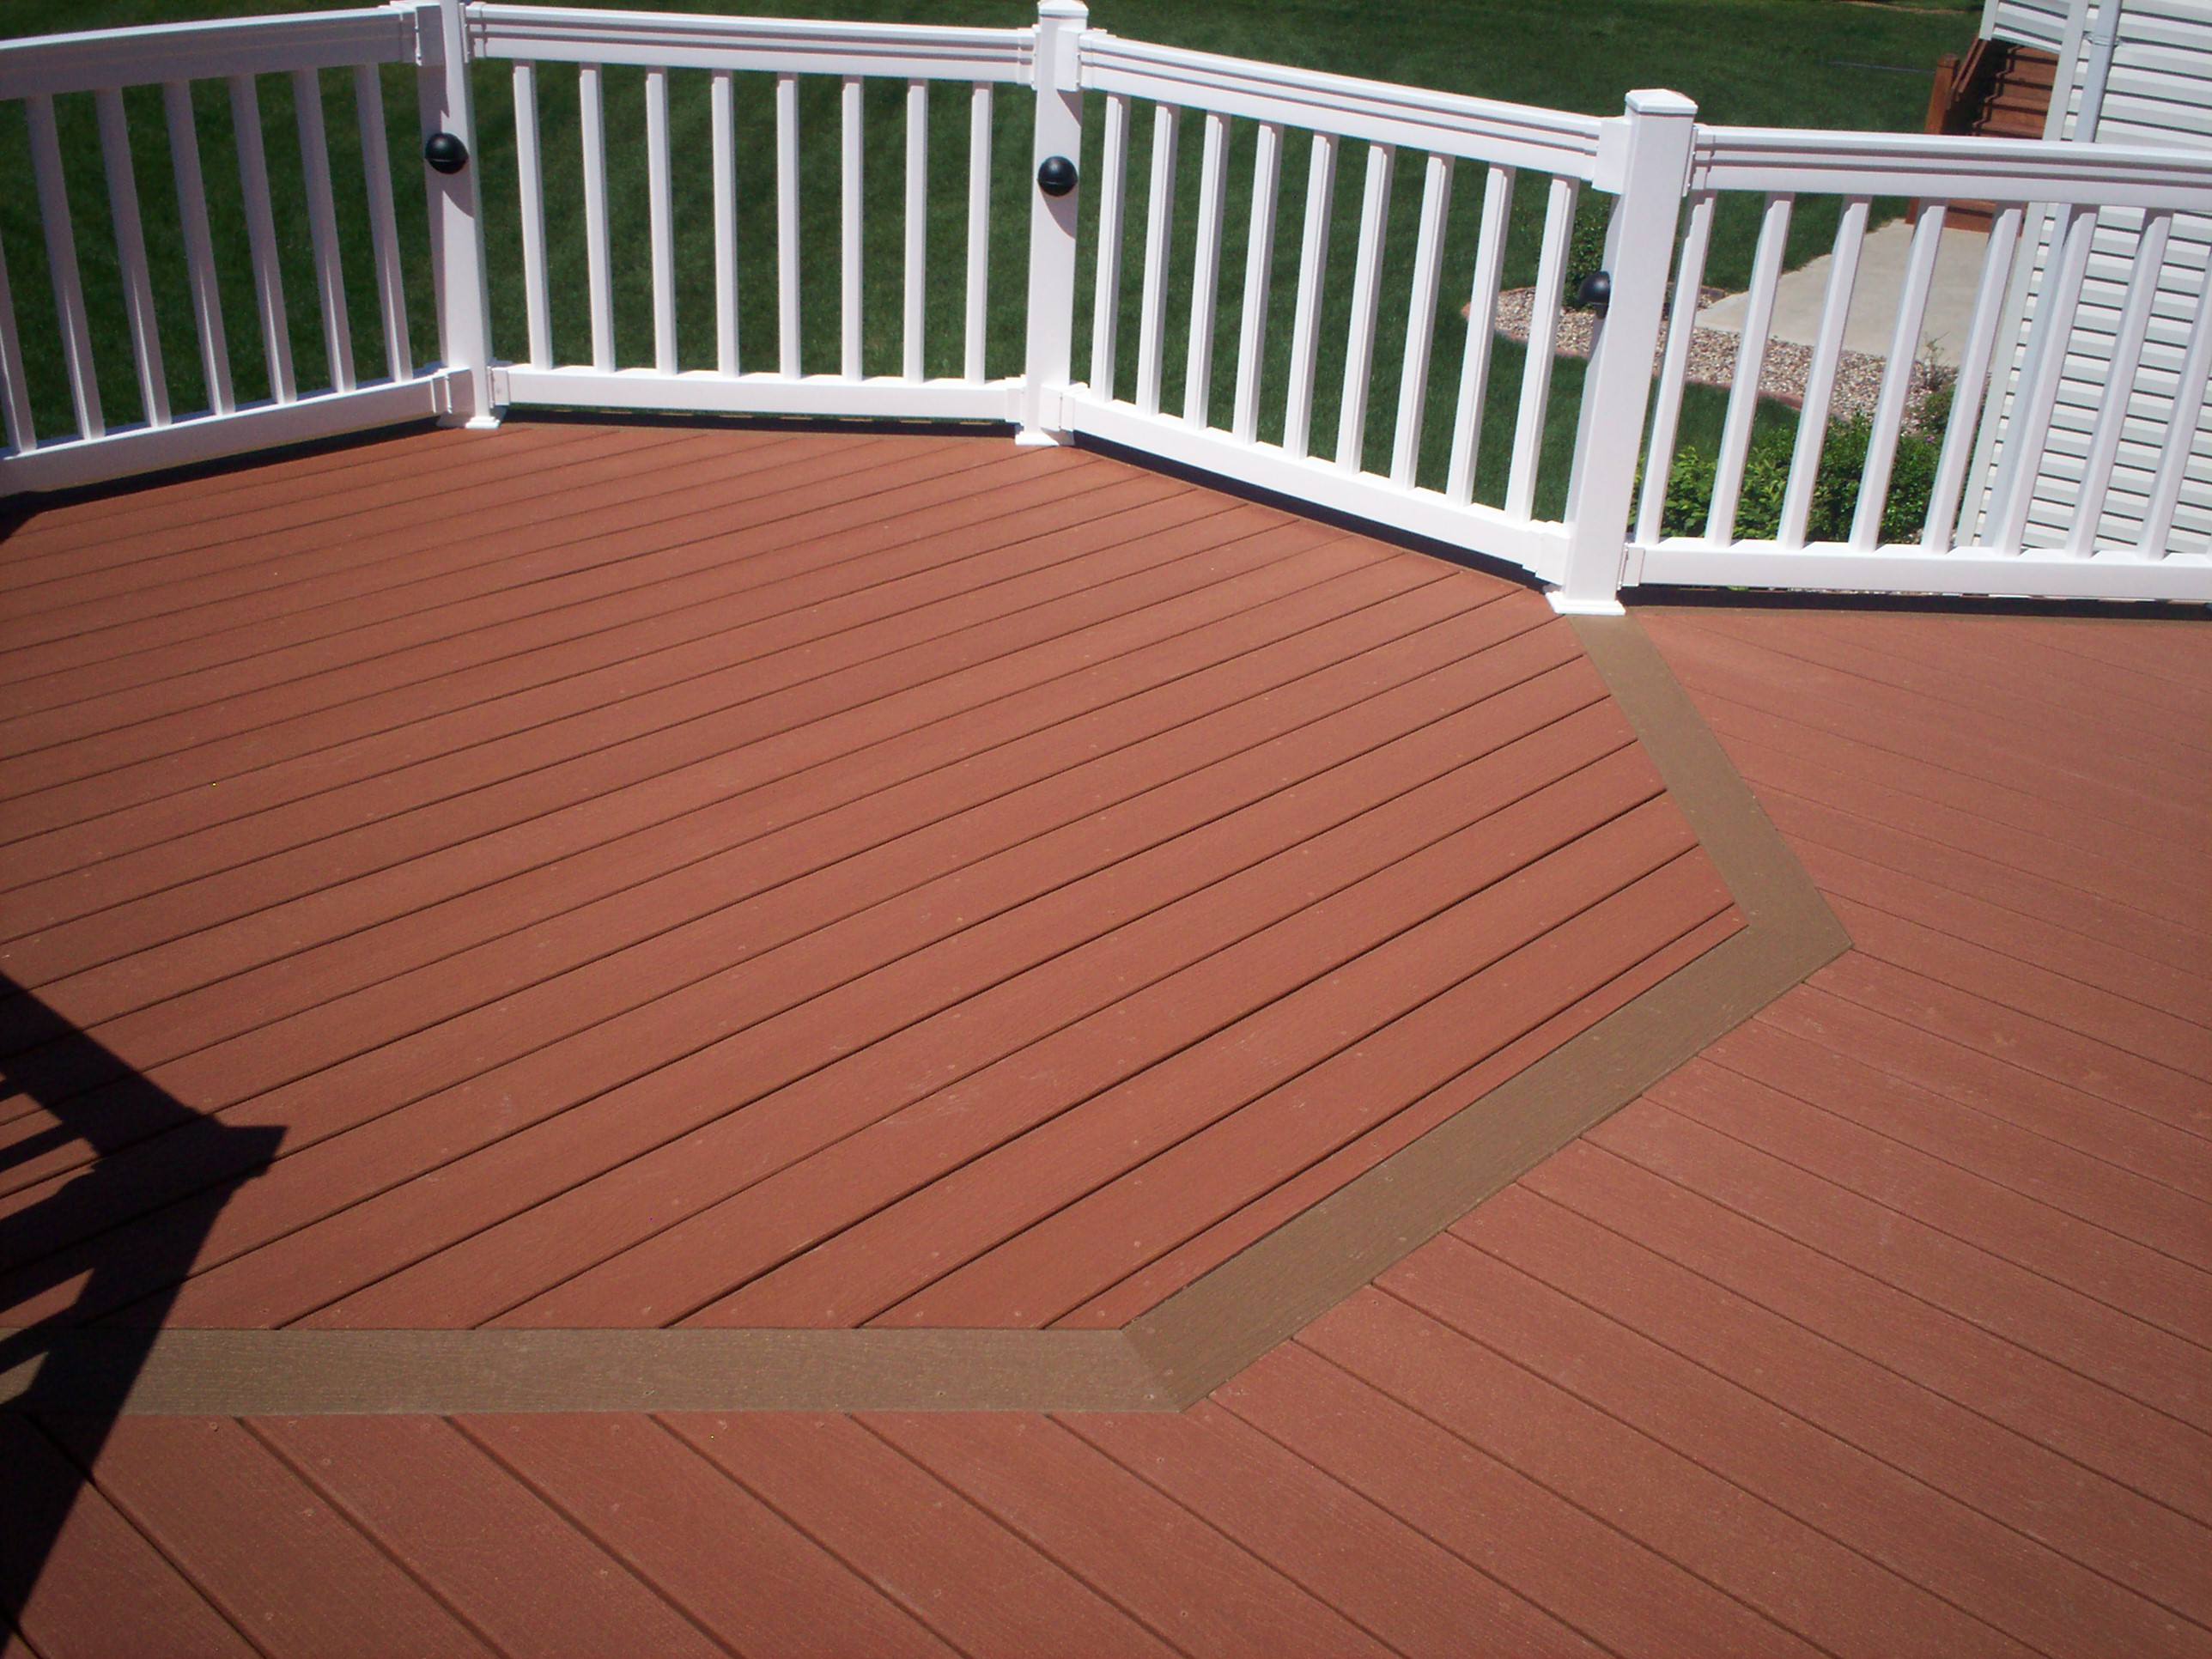 St louis deck designs with floor board patterns st for Deck blueprints